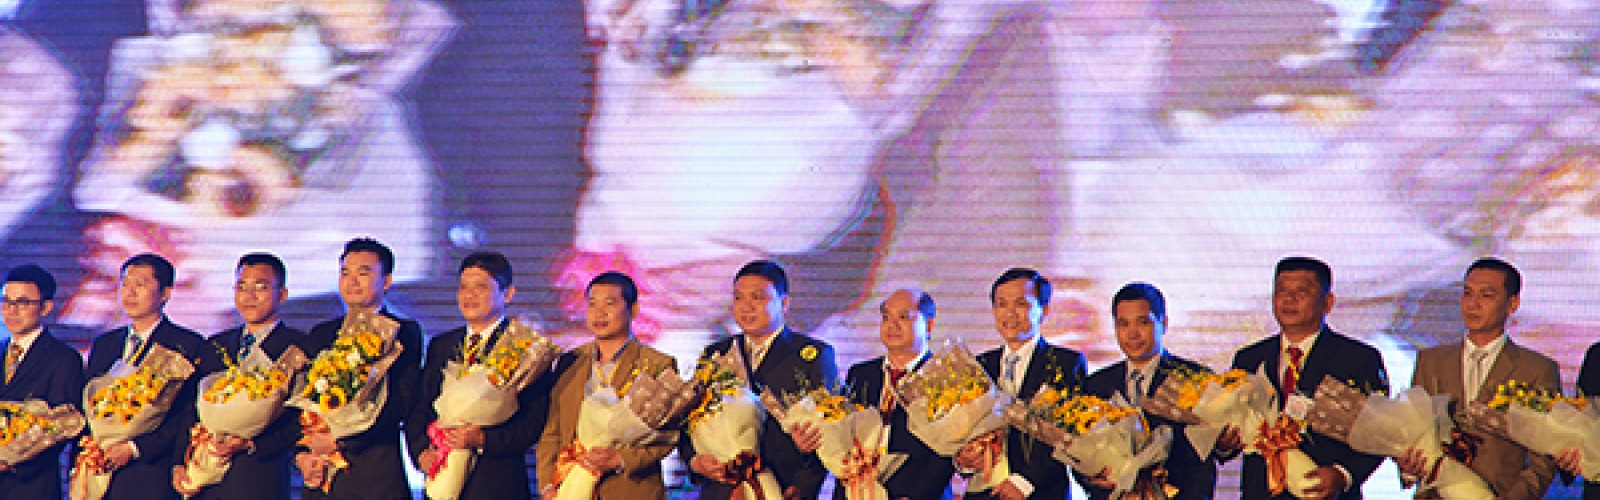 For the third time in a row, Dalat Hasfarm achieved High Quality Vietnamese Goods Awards